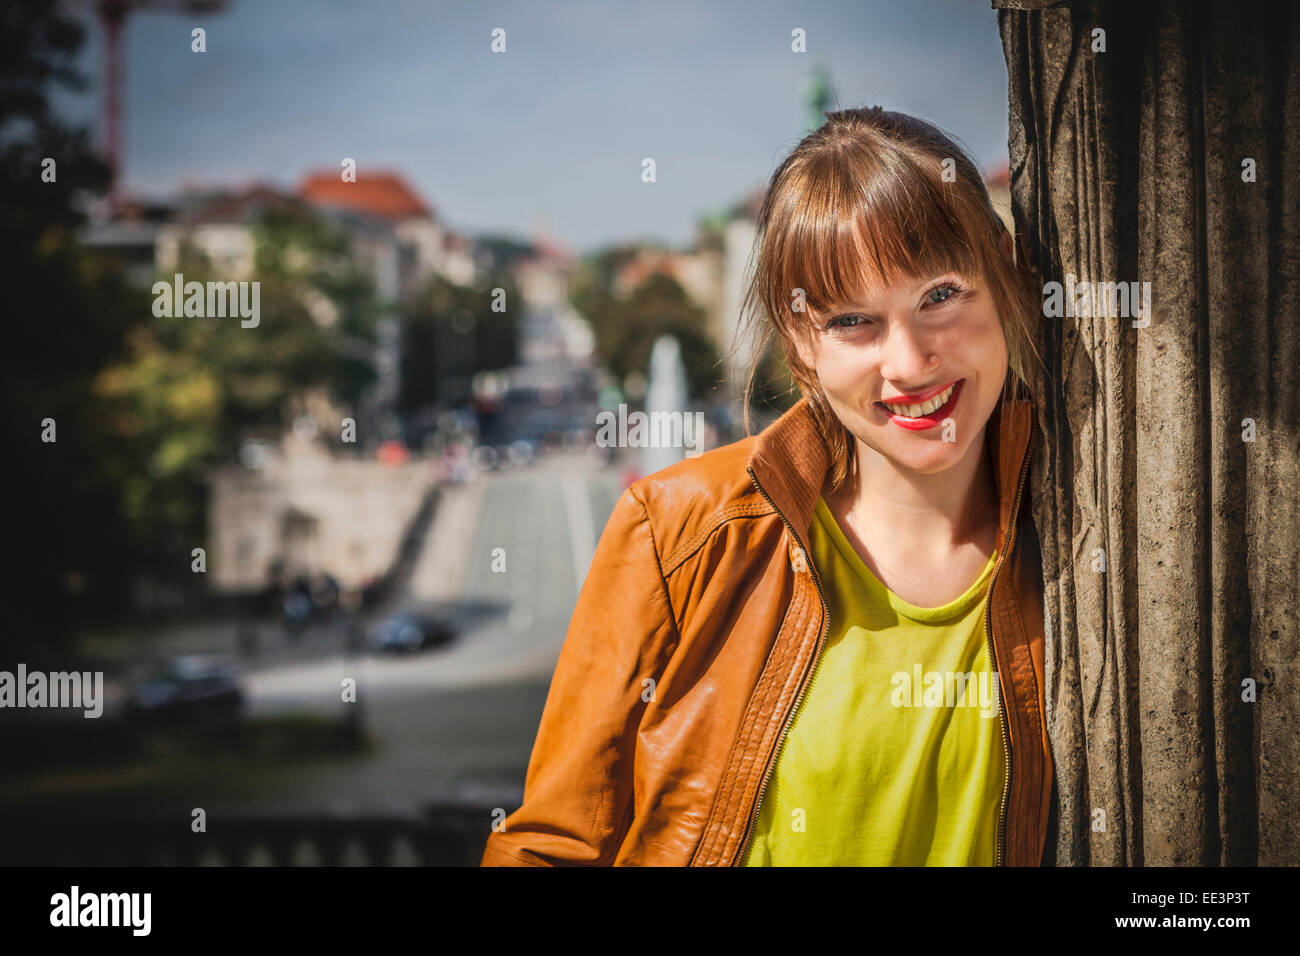 Portrait of young woman outdoors, Munich, Bavaria, Germany - Stock Image